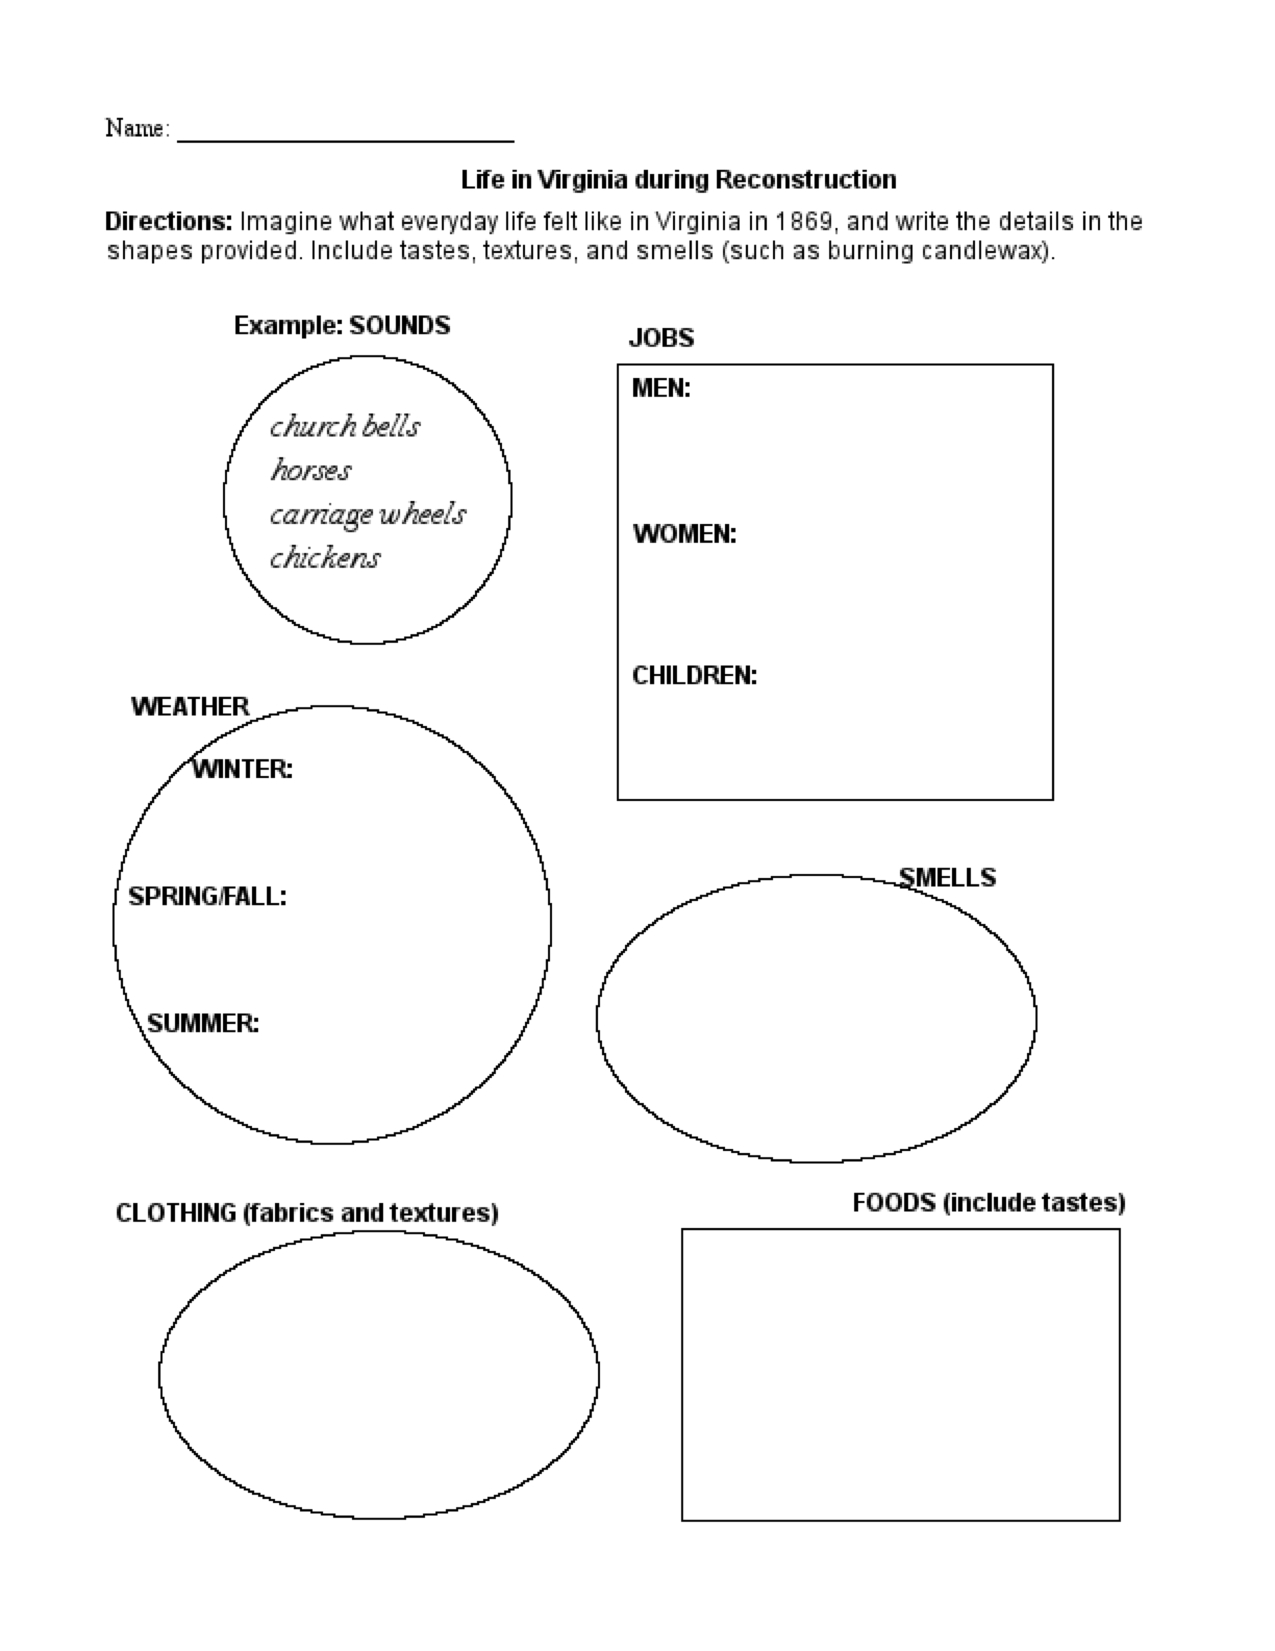 reconstruction worksheets worksheets releaseboard free printable worksheets and activities. Black Bedroom Furniture Sets. Home Design Ideas